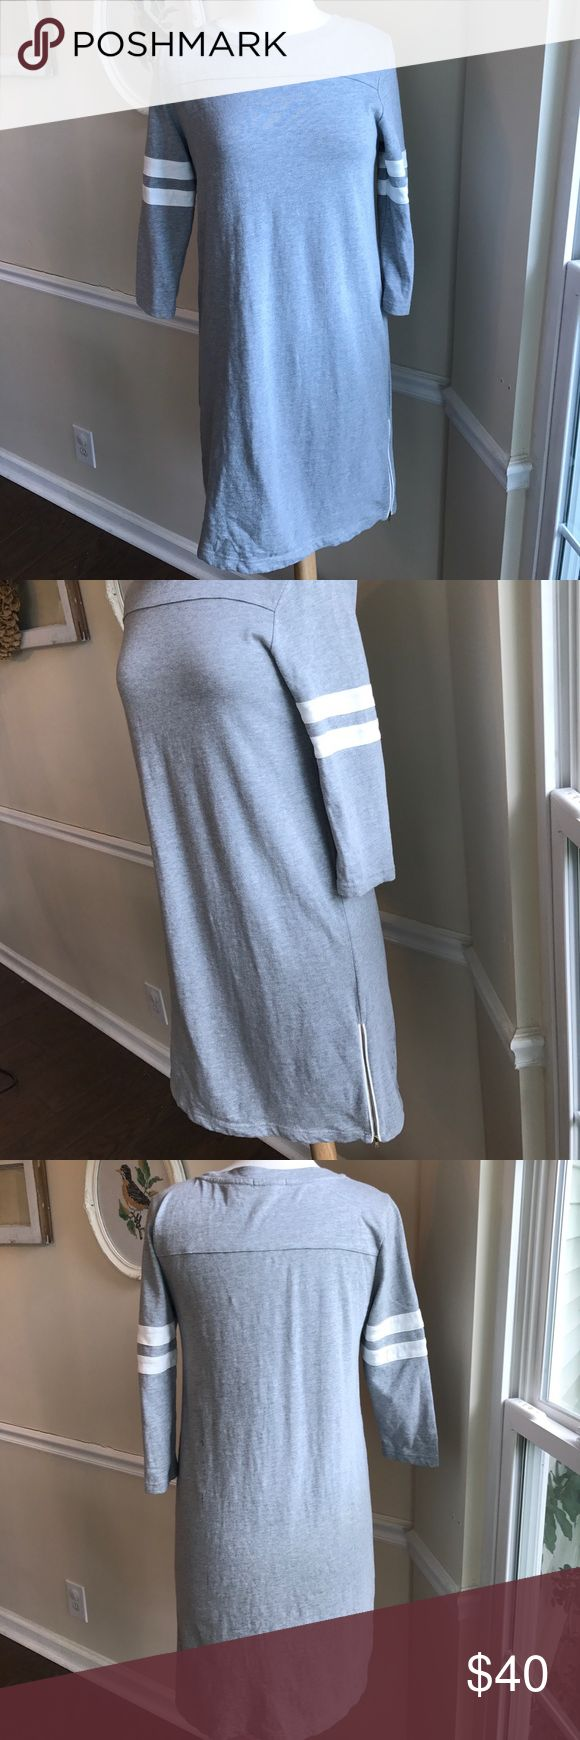 """J. Crew football jersey midi dress with zippers Very cute and comfortable gray, with white stripes, football jersey dress from J. Crew. Adorable stripes on the 3/4 length sleeve and zippers on both sides of the bottom of the dress. Approximately 17.5"""" from armpit to armpit, laying flat. Length from shoulder to hem is 36"""". Pre loved but still in great condition! So easy to wear! 💕Bundle 2 or more items for a private discount!💕 J. Crew Dresses Midi"""